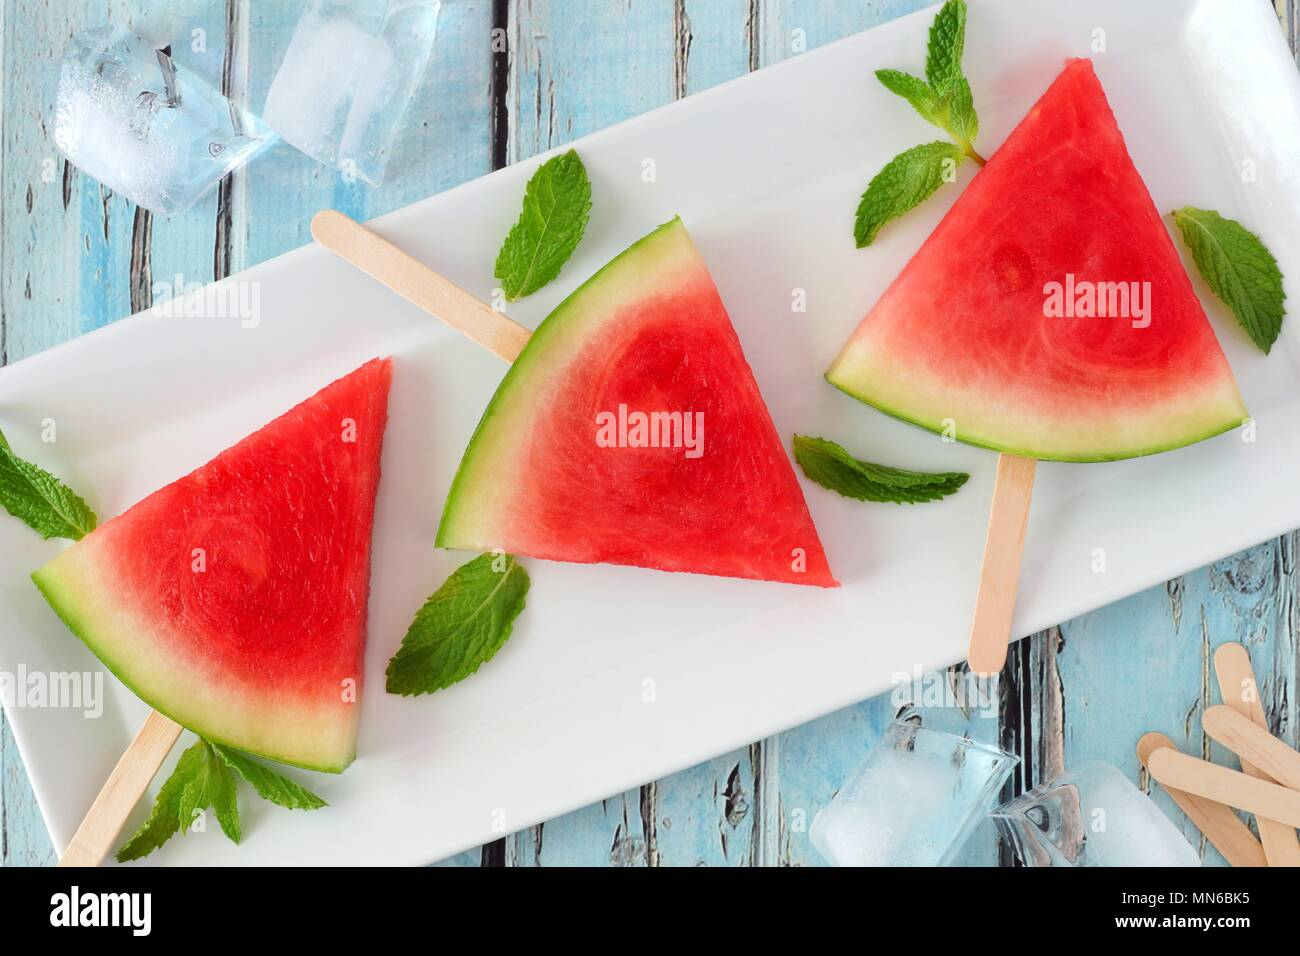 Group of watermelon slice popsicles on a white plate with rustic blue wood background - Stock Image